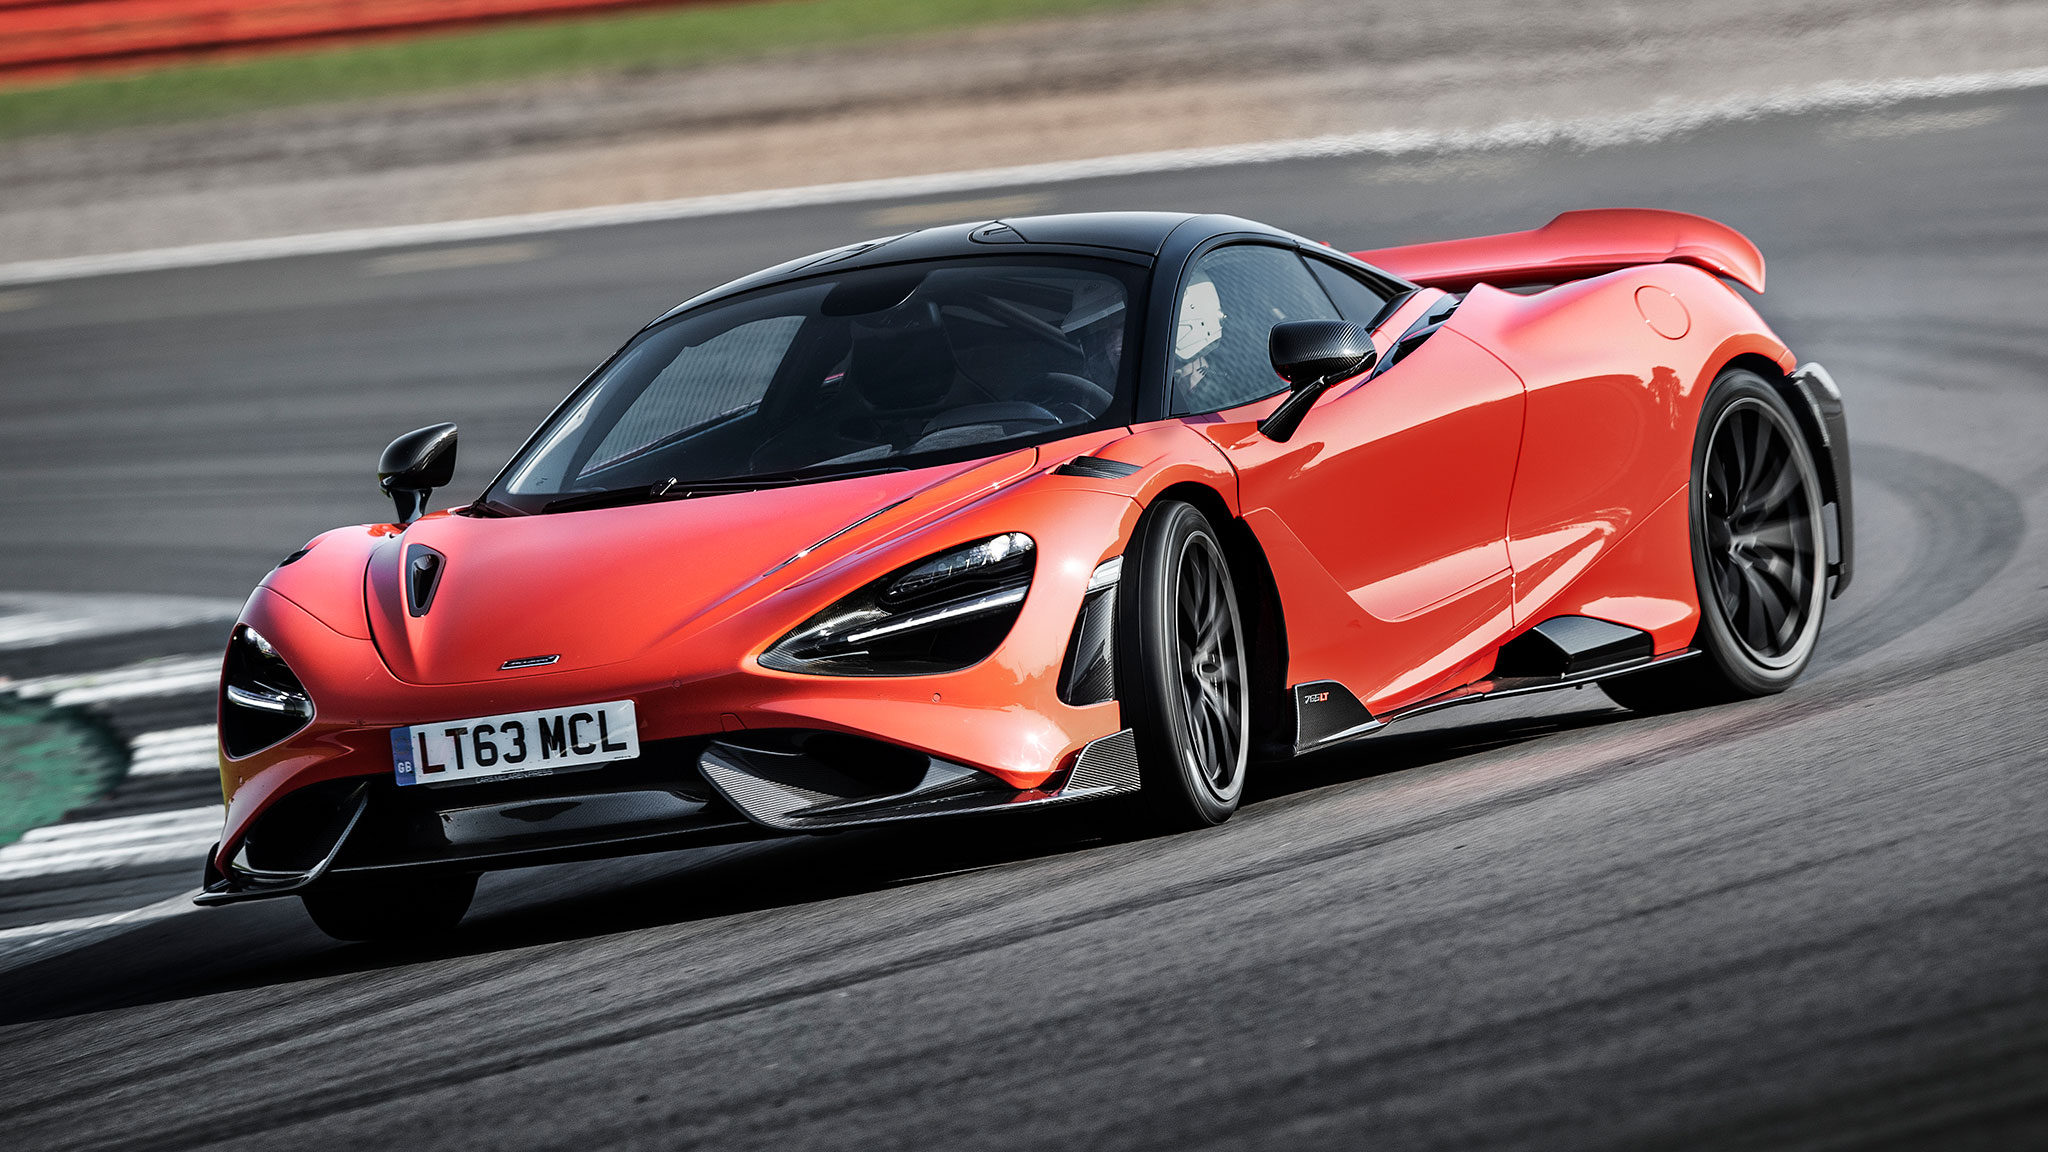 9s The Easy Way: The New McLaren 765LT Runs The Quarter In 9.33 Seconds, Drains Your Bank Account Faster